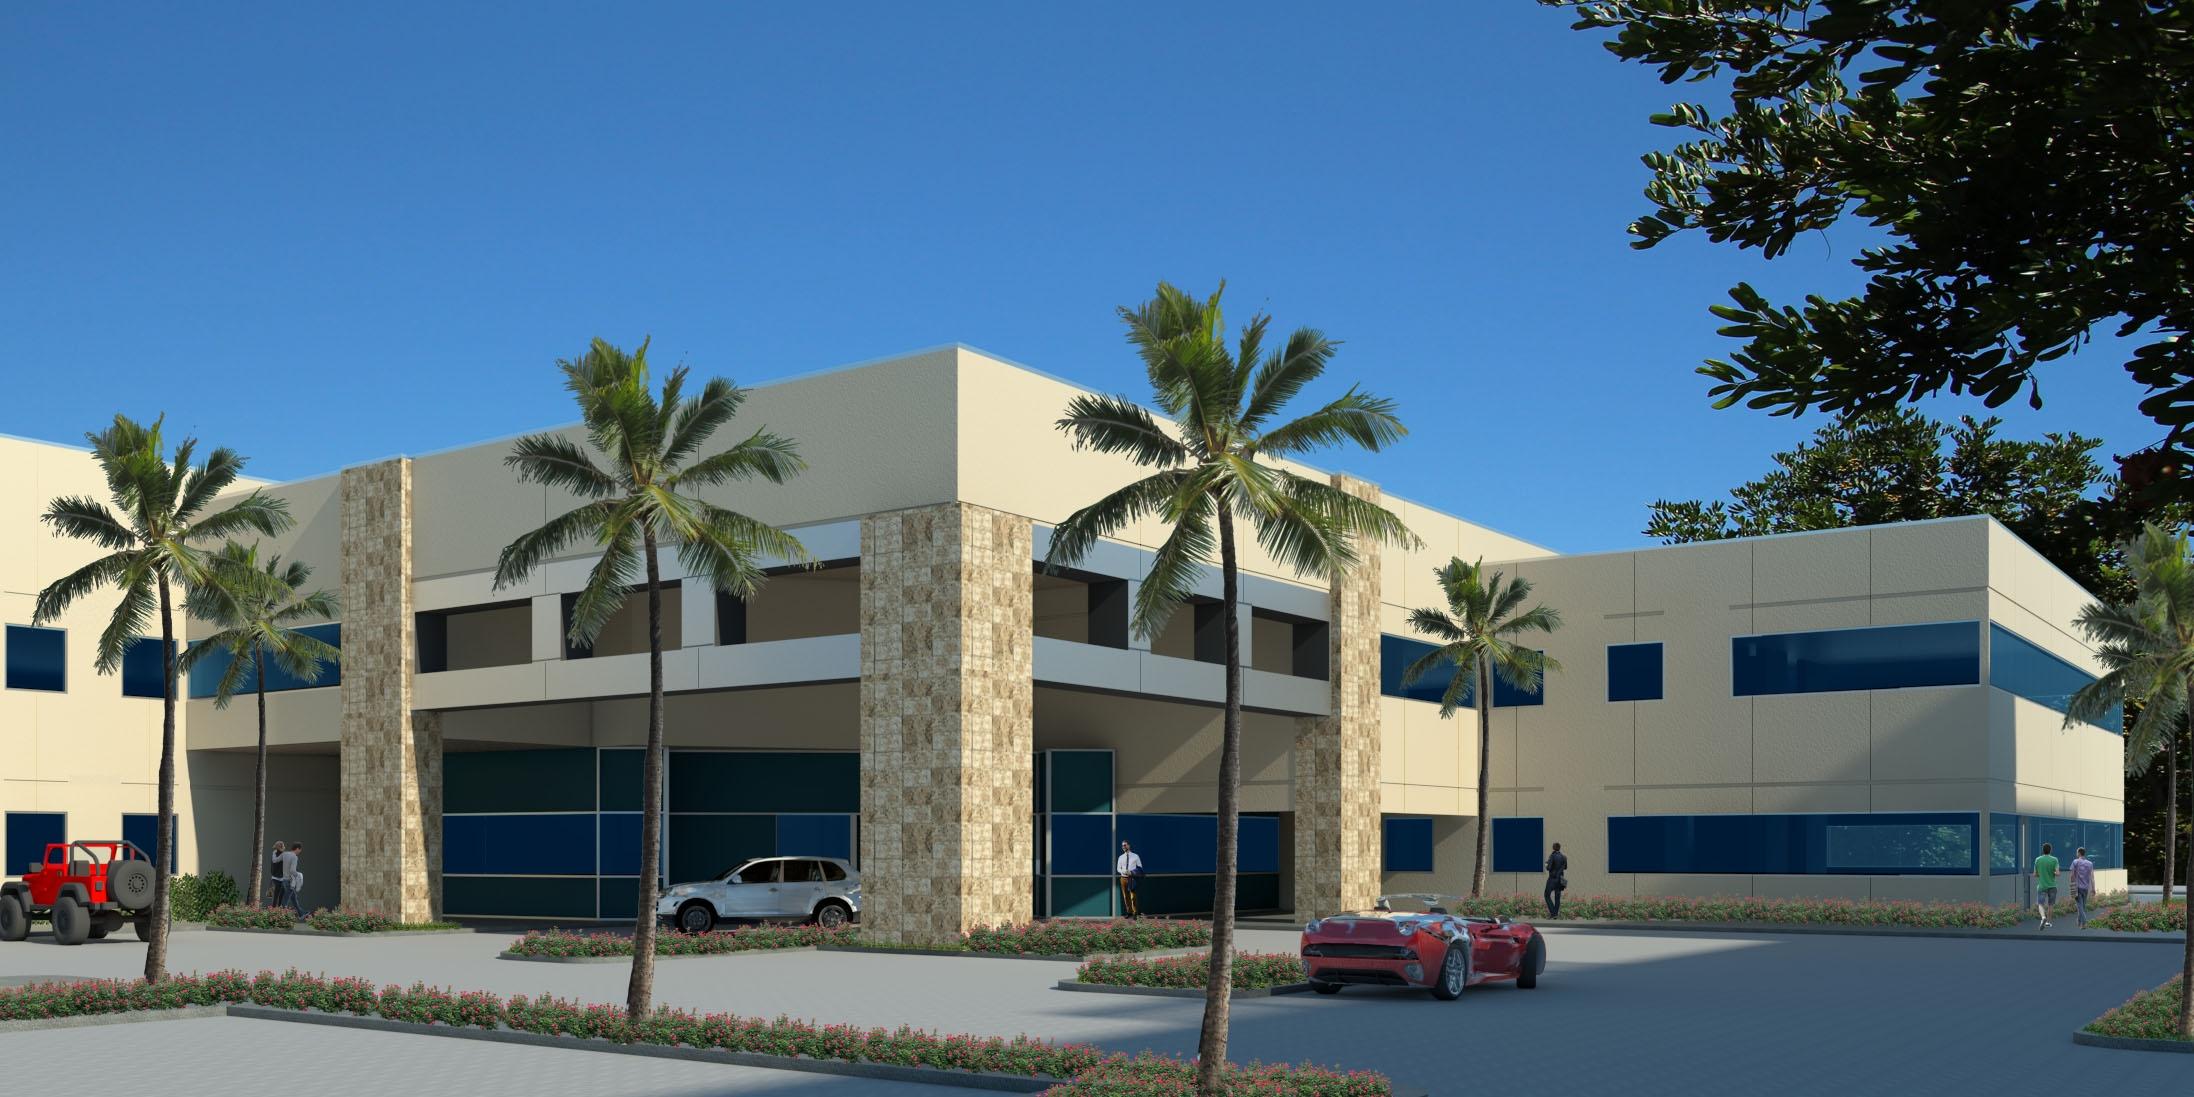 Existing office building with some modifications.